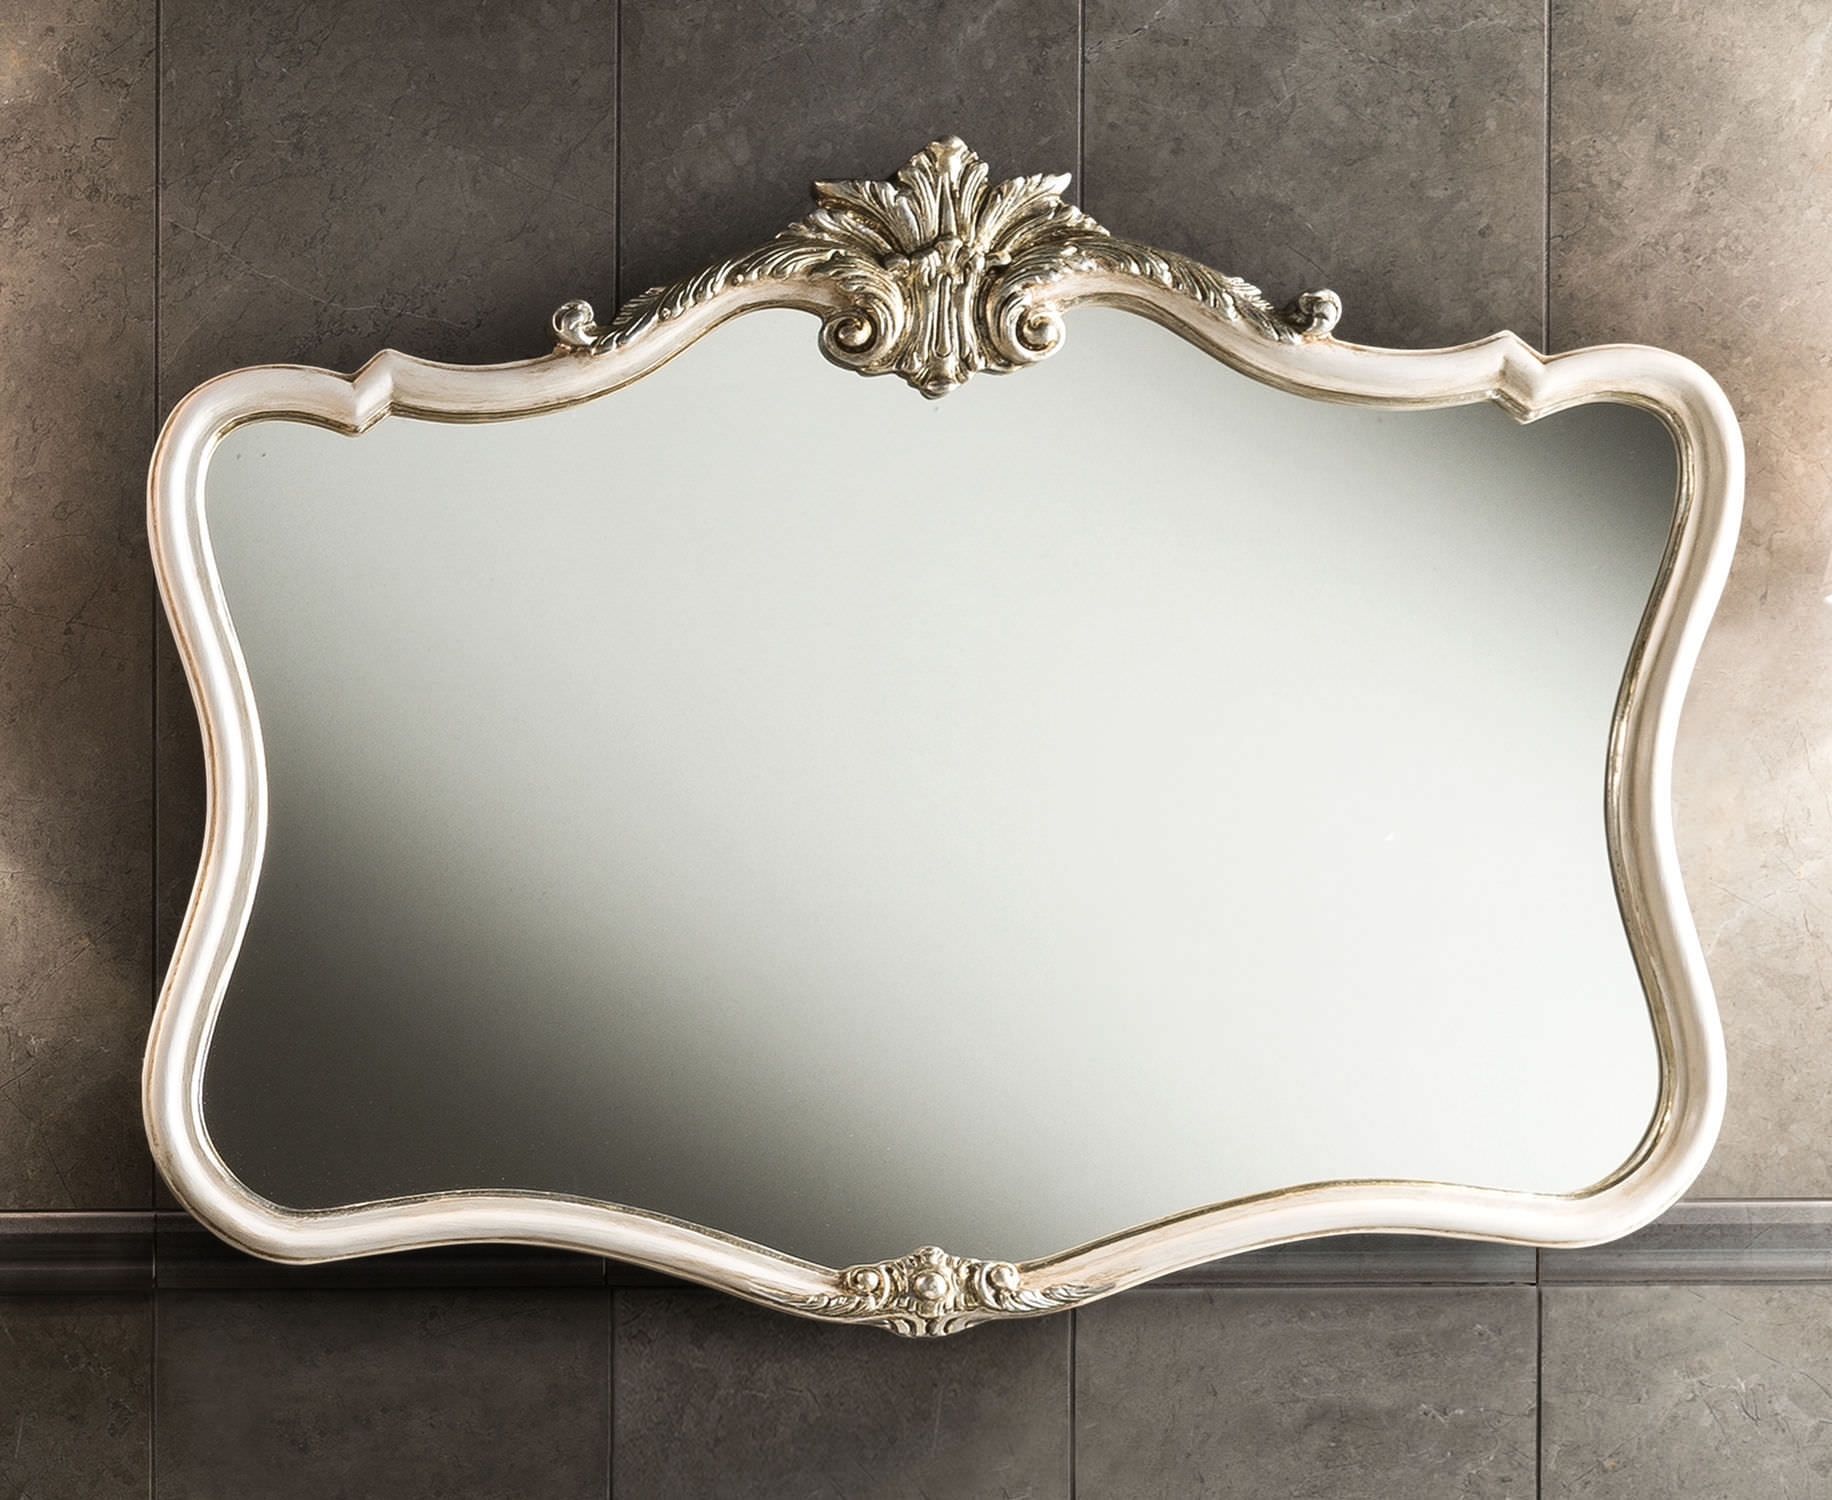 Wall Mounted Mirror New Baroque Design Barocco Mirror 92x70cm Inside Baroque Mirrors (Image 15 of 15)